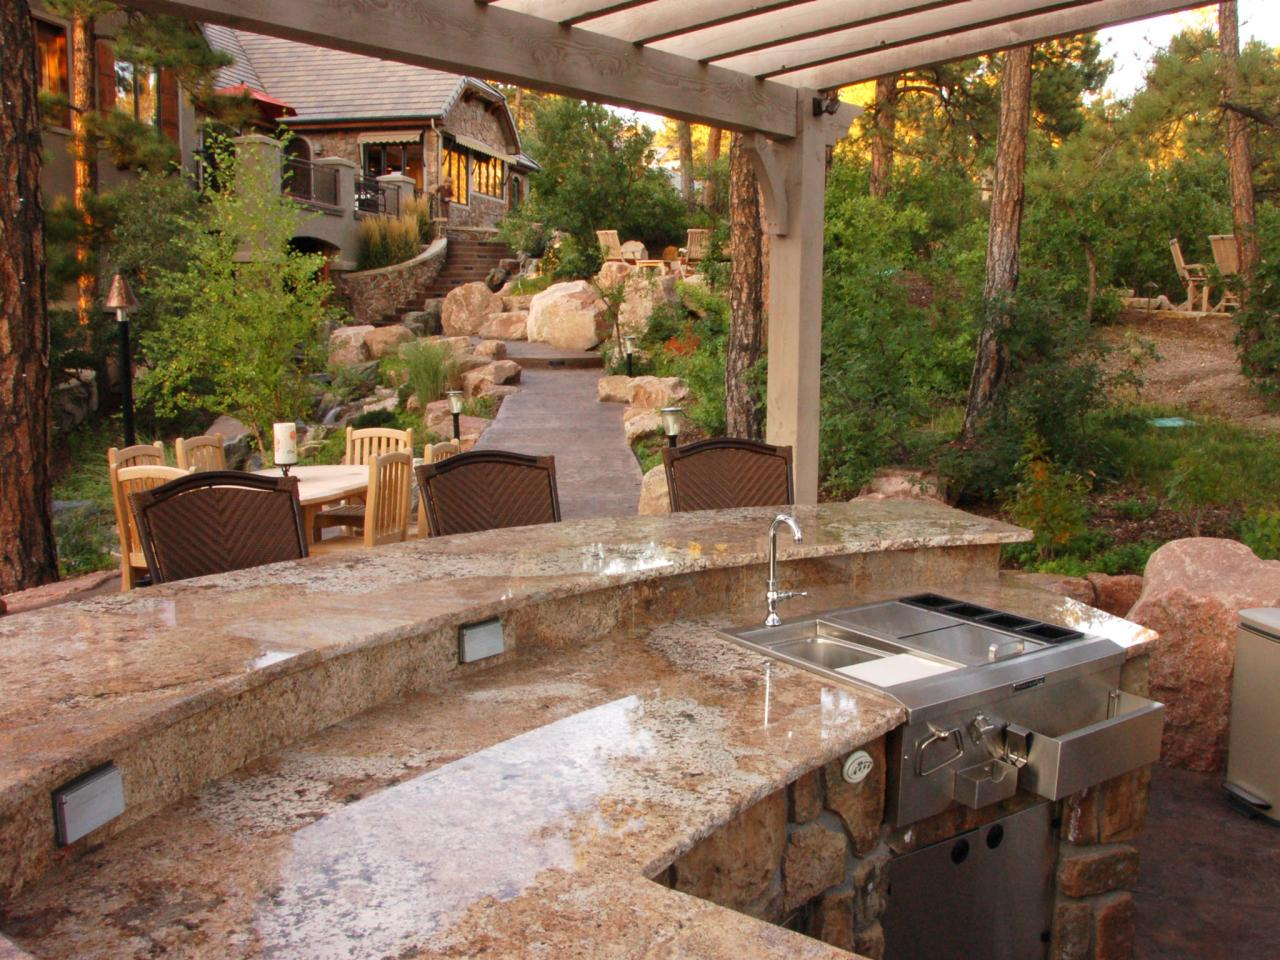 Outdoor Design Ideas 20 beautiful outdoor design ideas with fireplaces Outdoor Kitchen Design Ideas